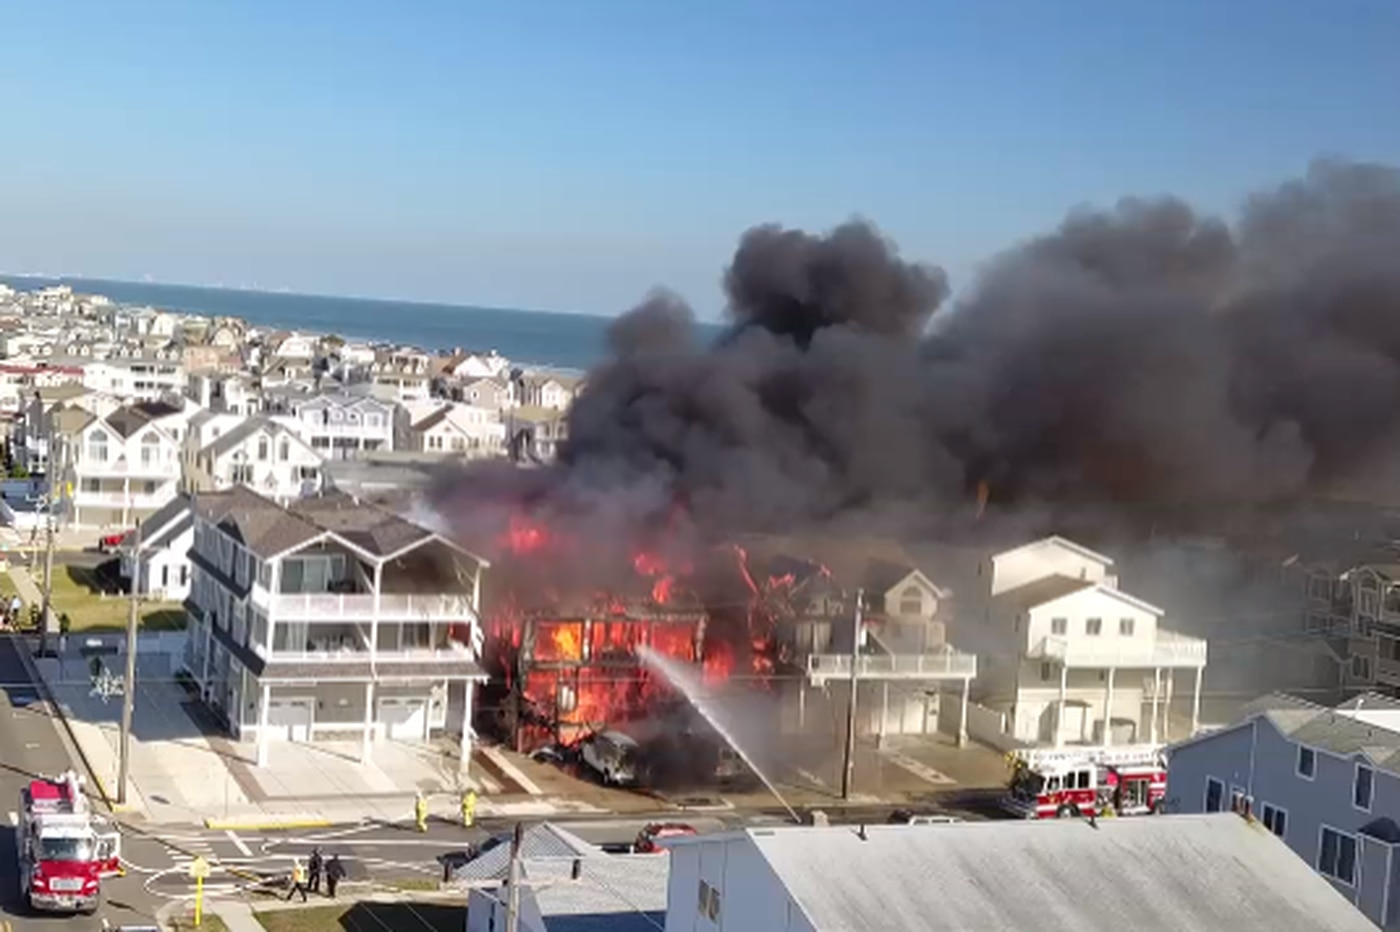 Body of elderly woman missing after Jersey Shore fire is found